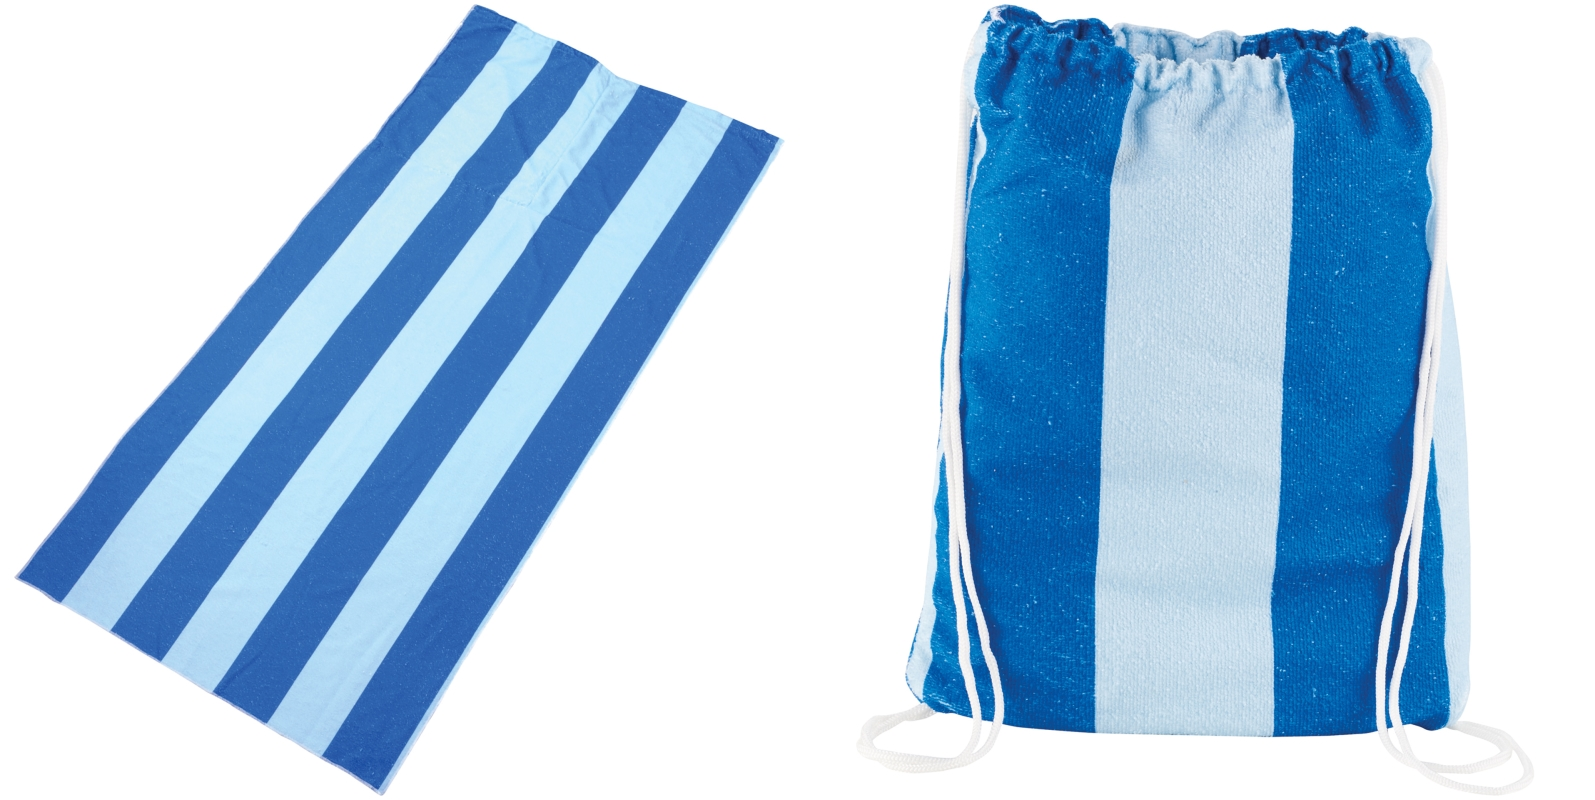 LEEDS 1080-27 - Microfiber Beach Blanket with Drawstring Pouch